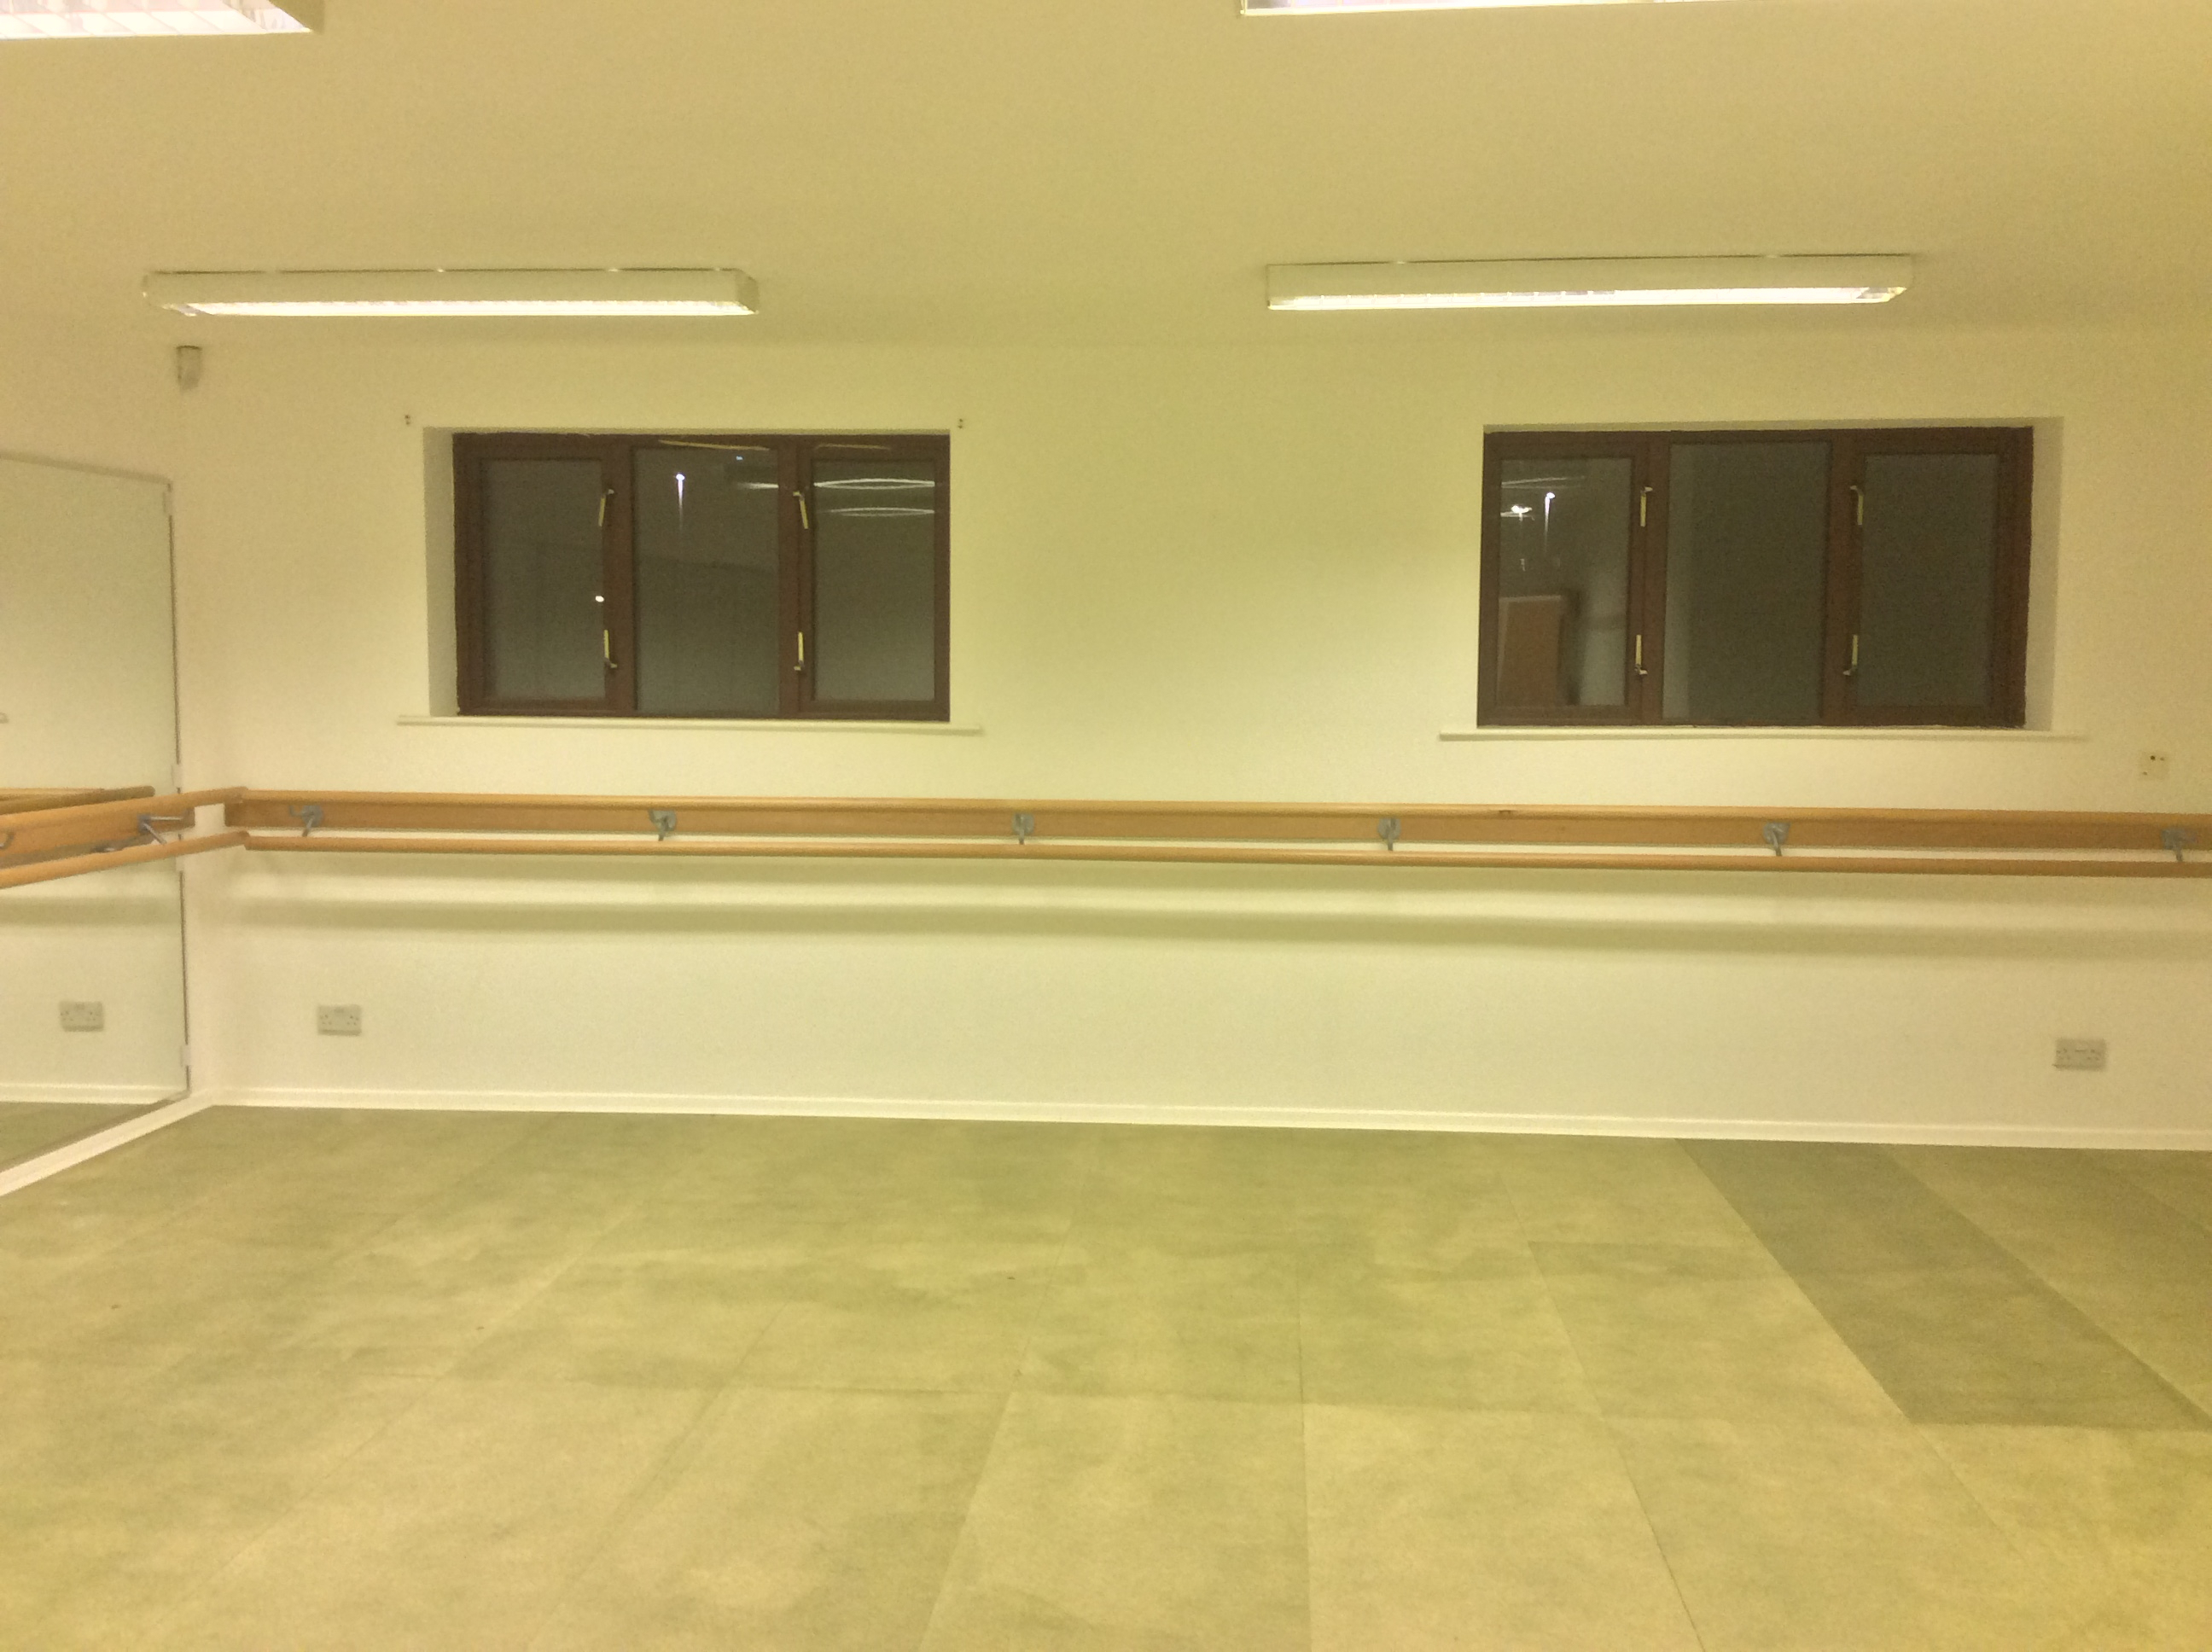 New Dance Studio Mirrors & Barres For Just Dance, Sheffield – Glass Pertaining To Most Up To Date Dance Studio Wall Mirrors (Gallery 10 of 20)